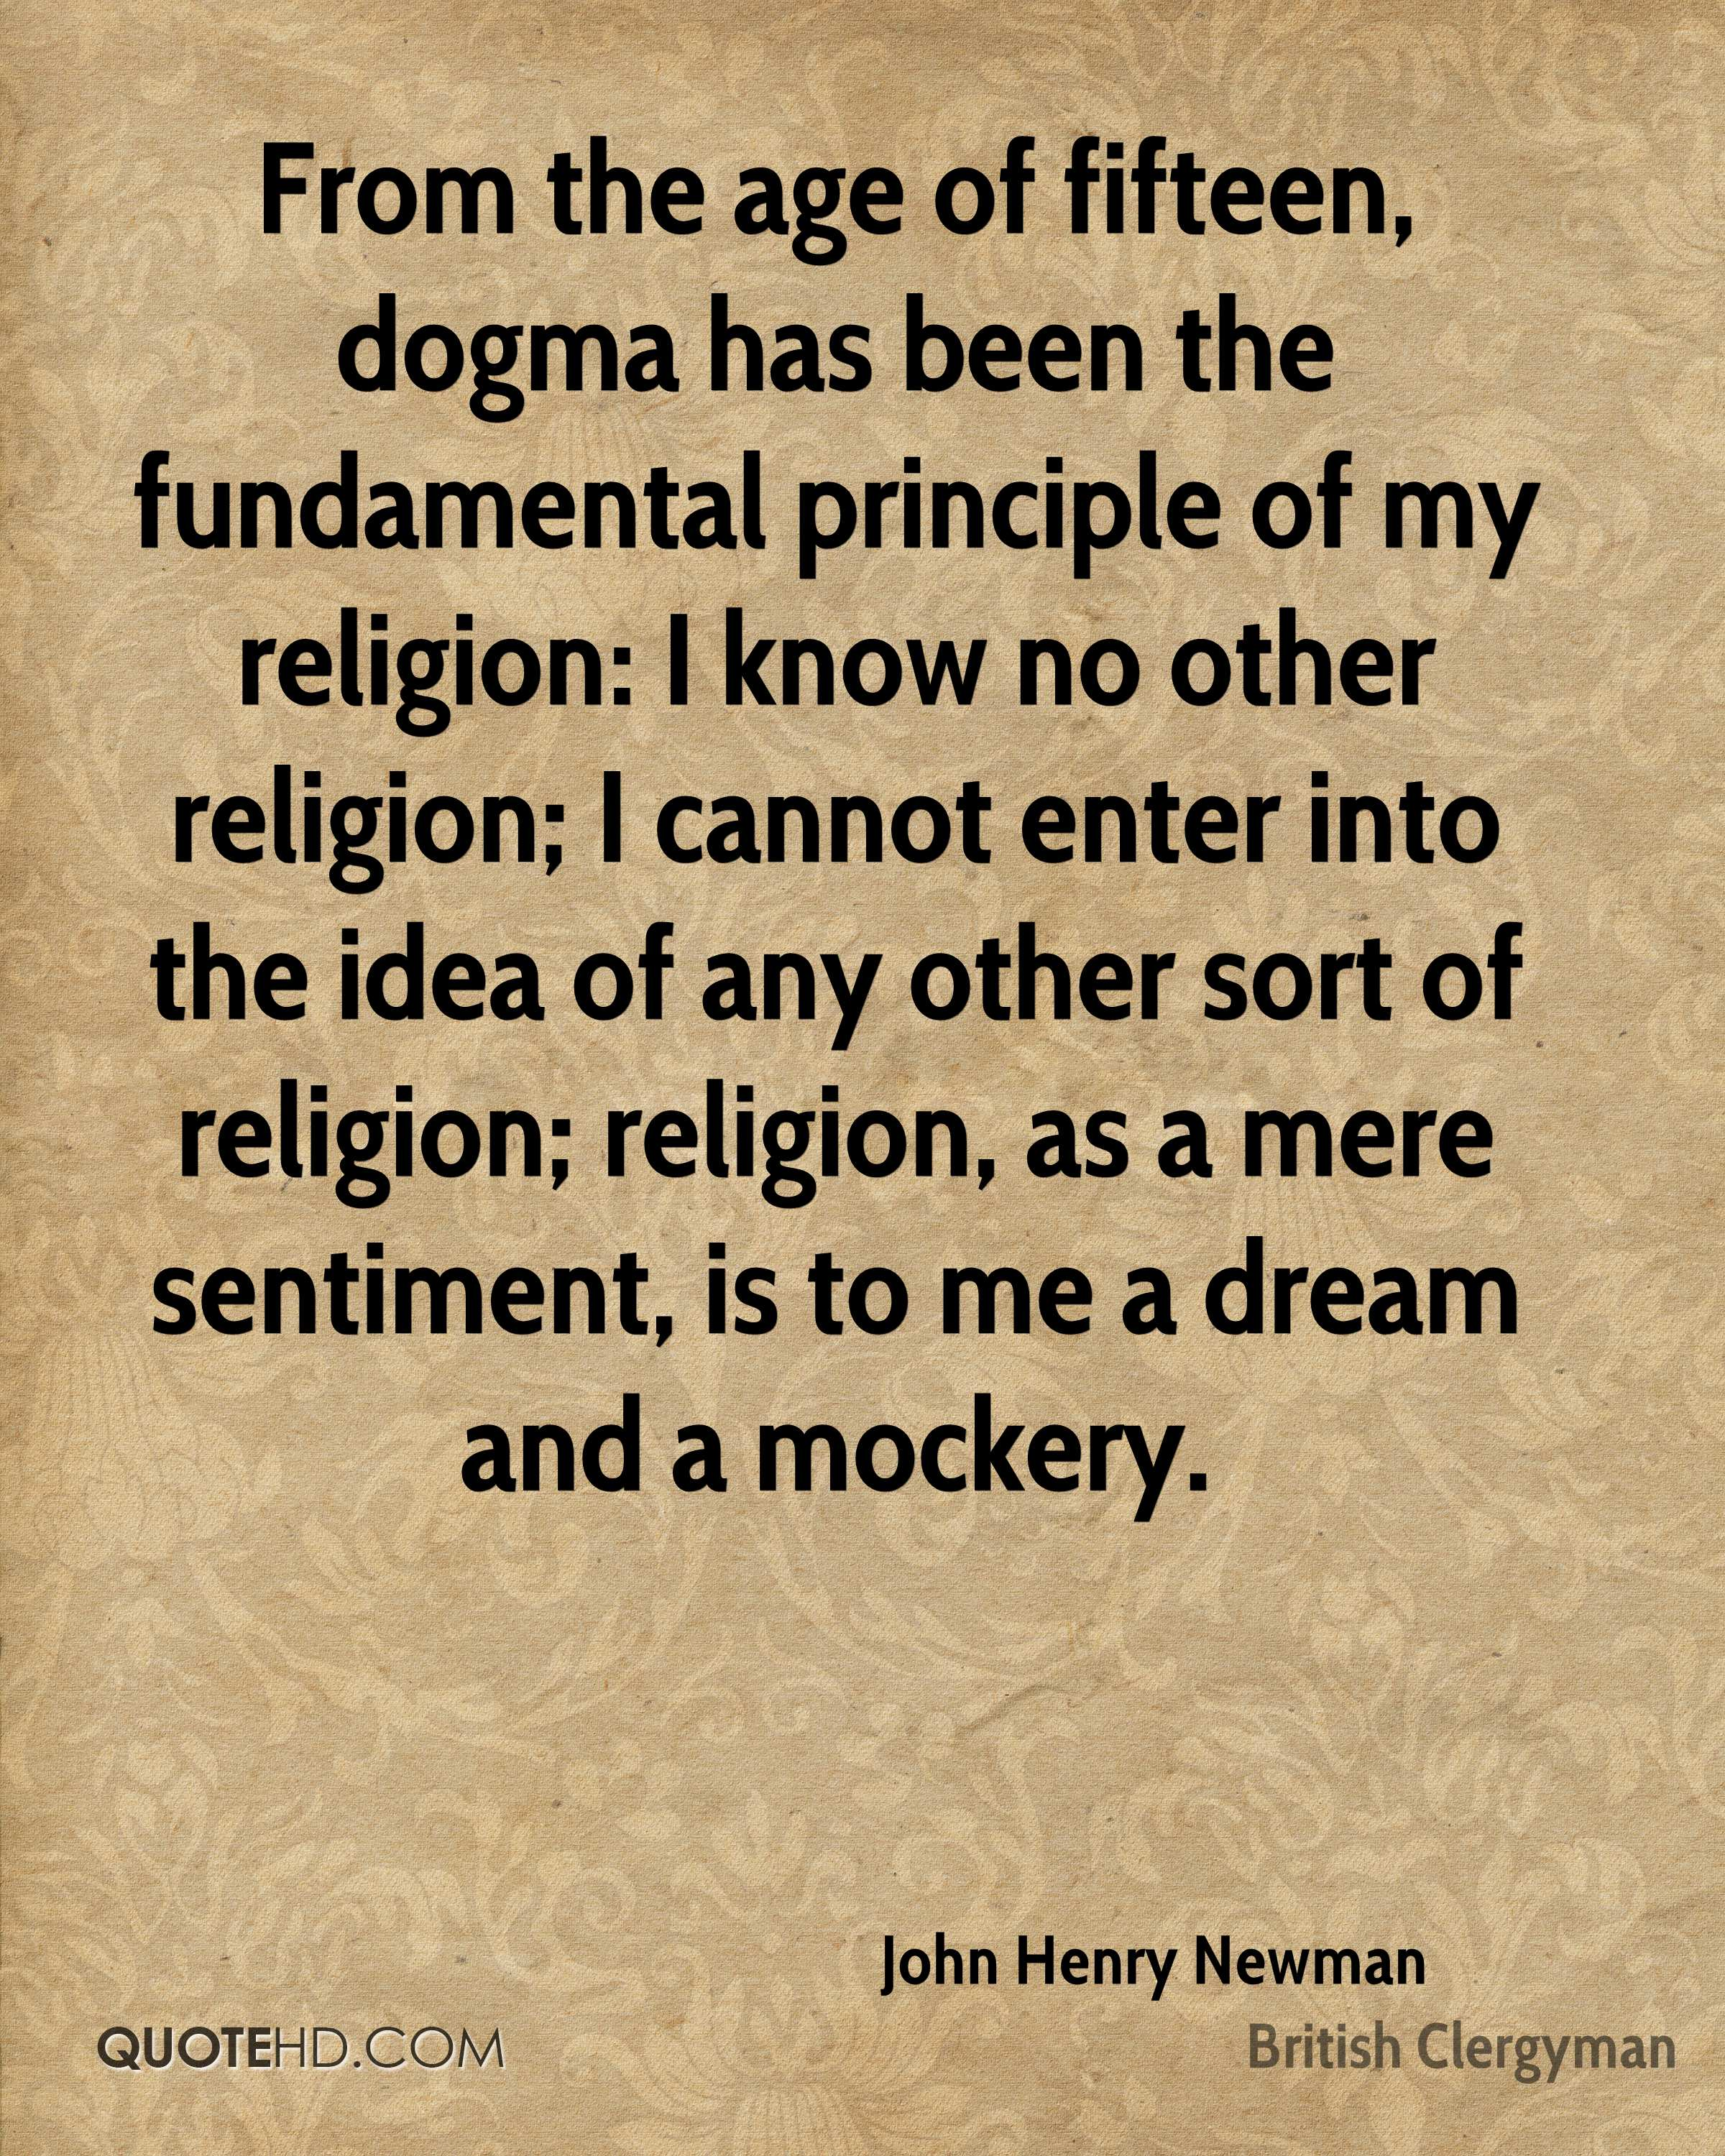 From the age of fifteen, dogma has been the fundamental principle of my religion: I know no other religion; I cannot enter into the idea of any other sort of religion; religion, as a mere sentiment, is to me a dream and a mockery.